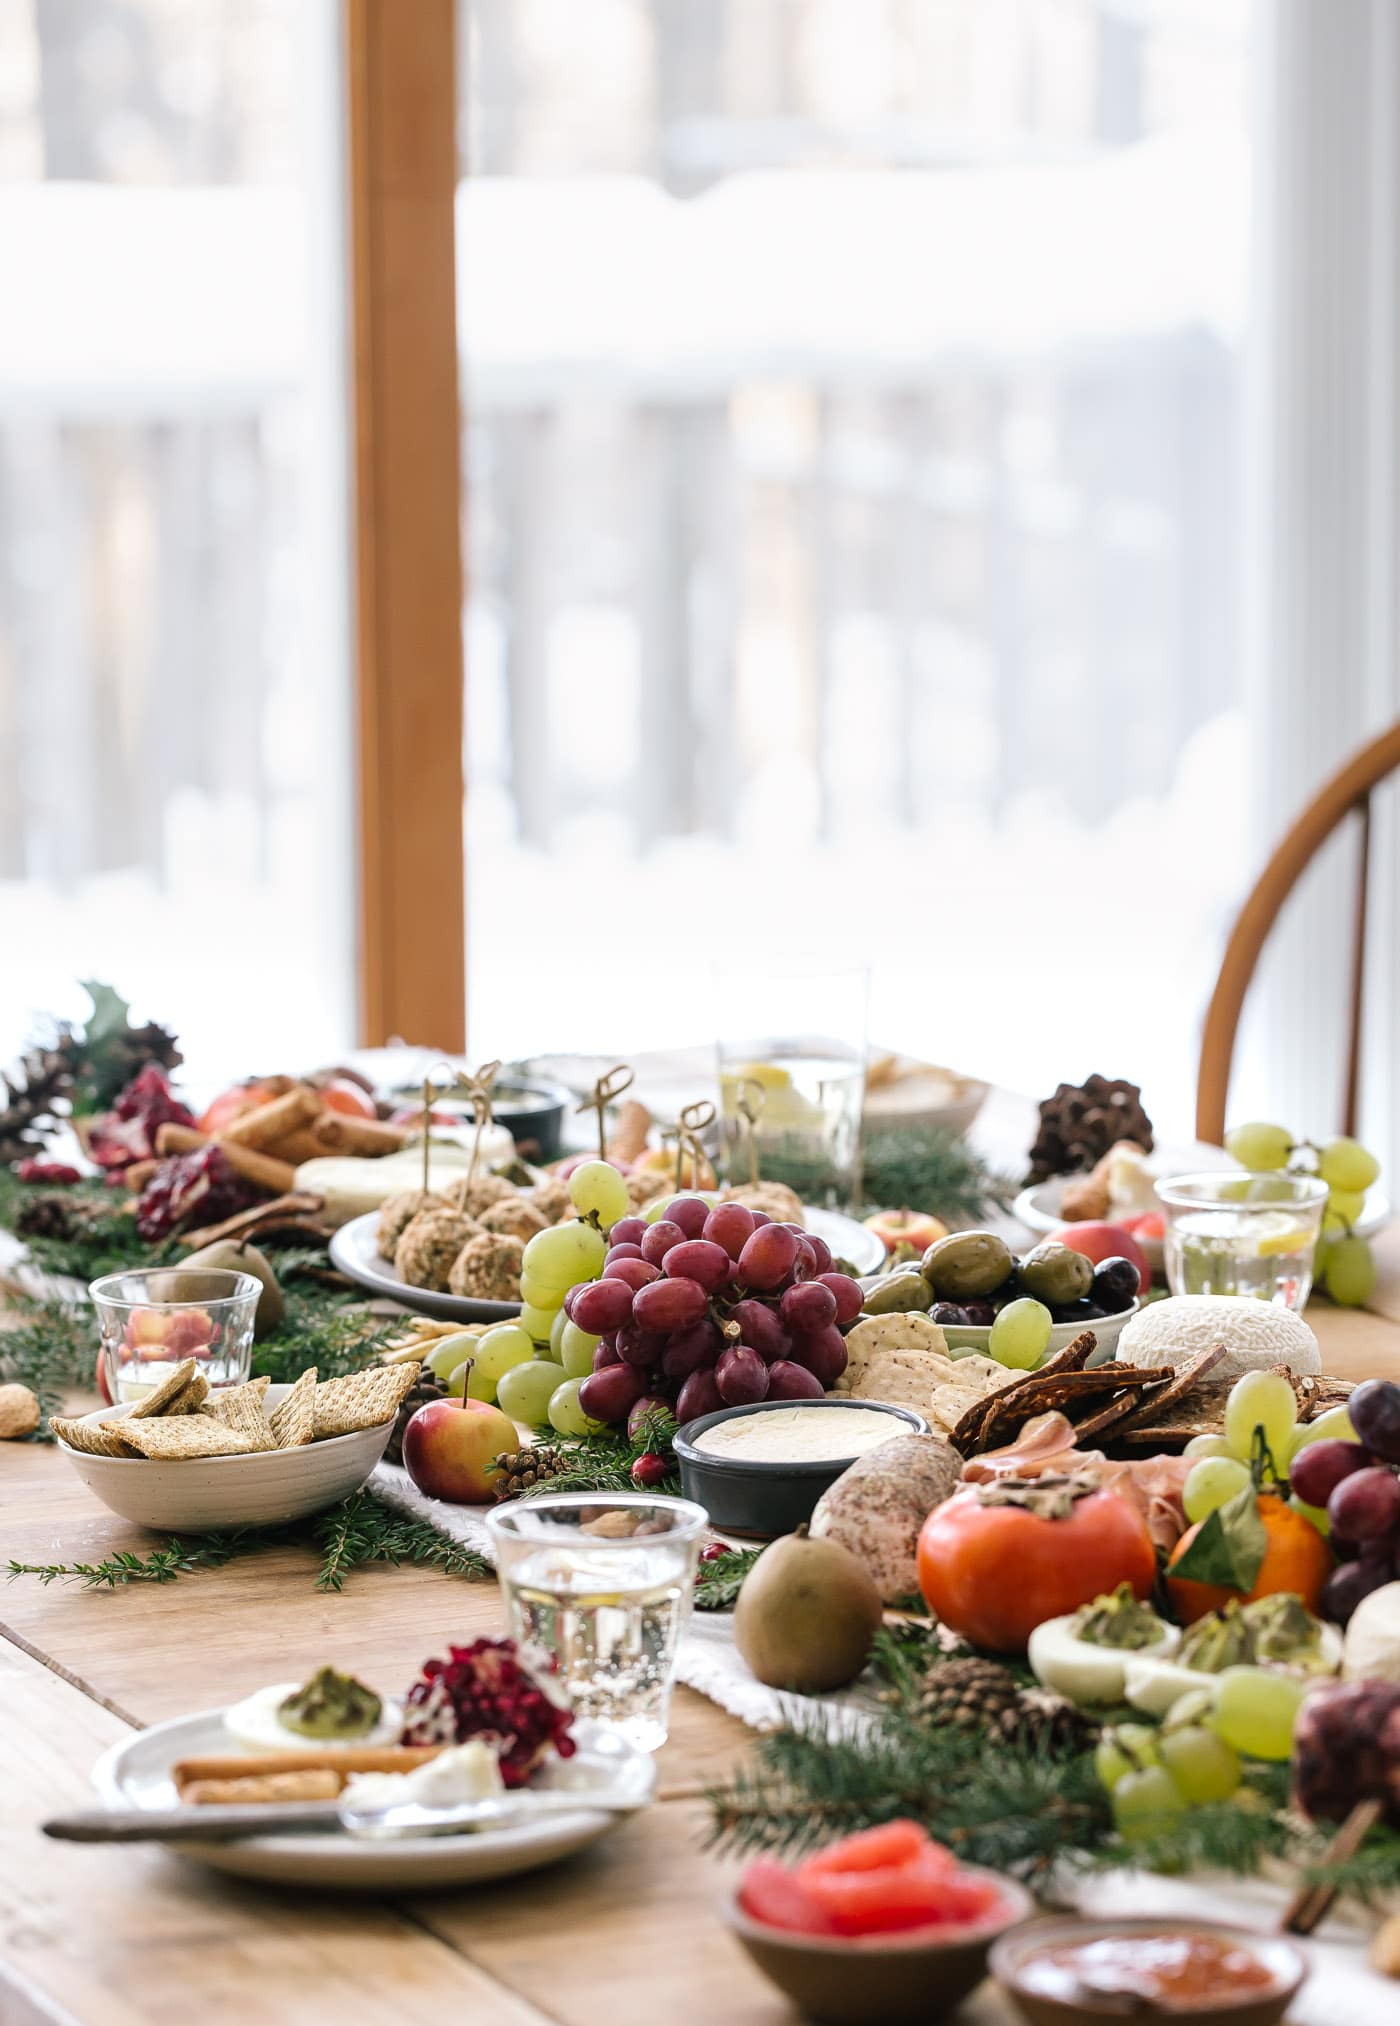 A table full of cheese, fruit and baked goat cheese balls are photographed from the front view with a snowy backdrop.